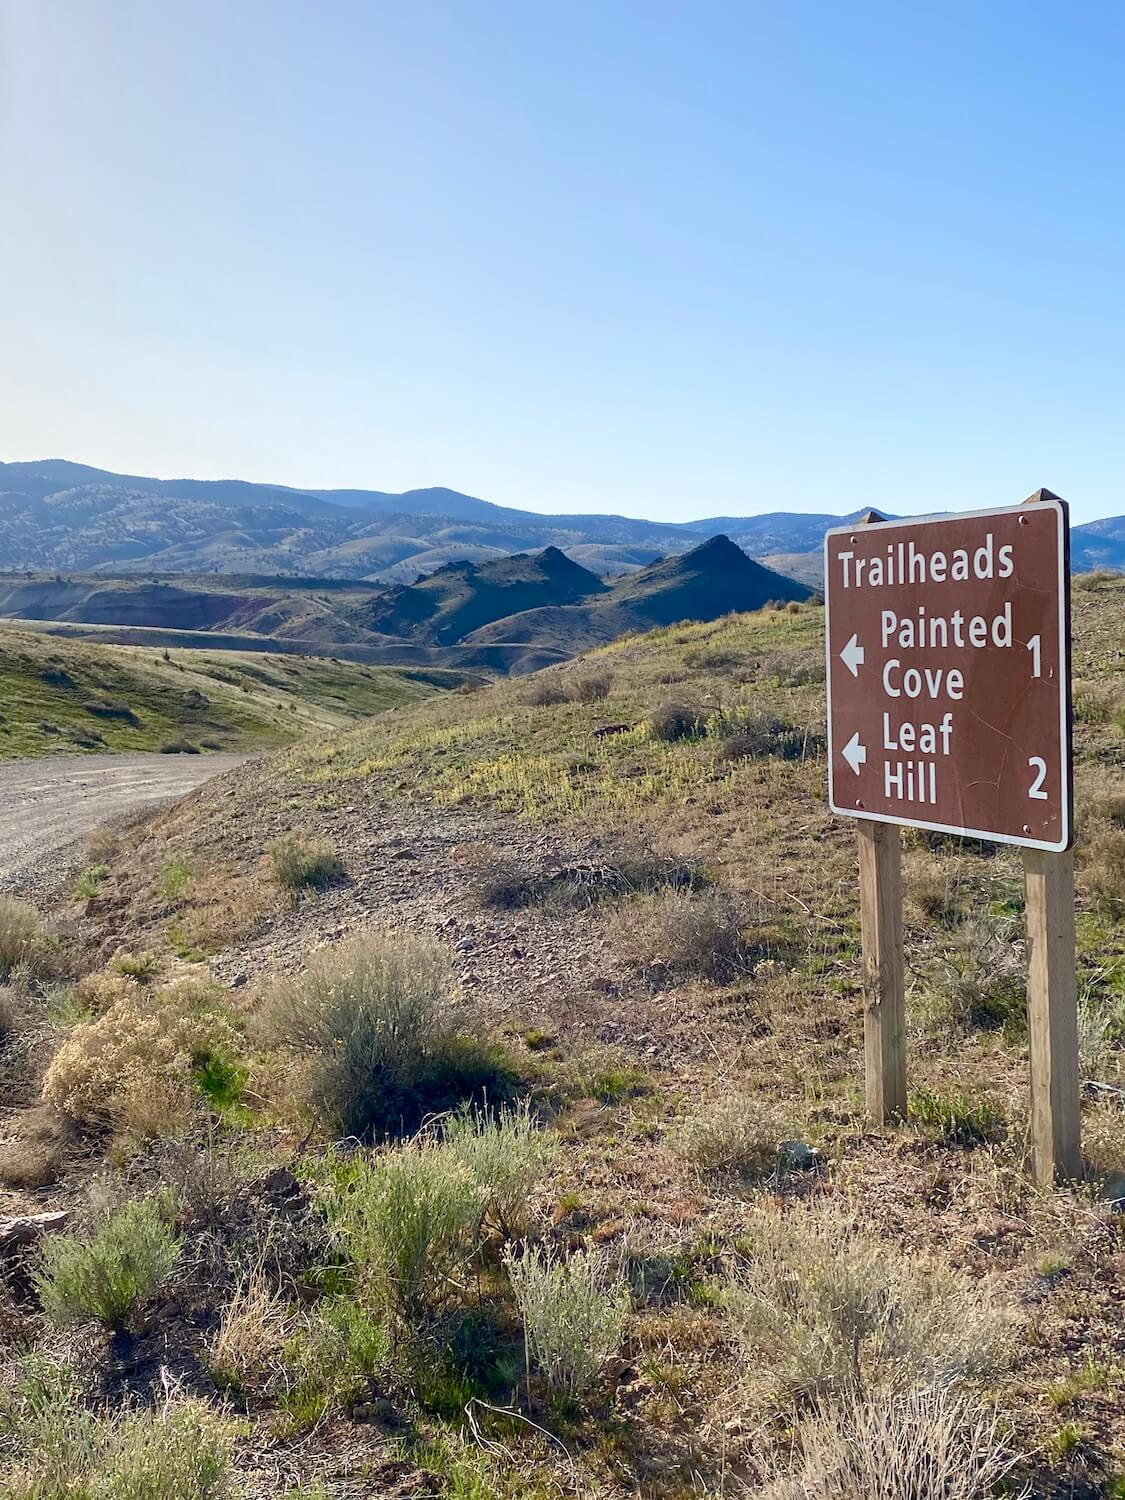 A brown park sign with white lettering indicates the direction to Painted Cove and Leaf Hill, both trails in the Painted Hills monument.  A gravel road runs through the left side of the photo in front of rolling hills covered with low green brush.